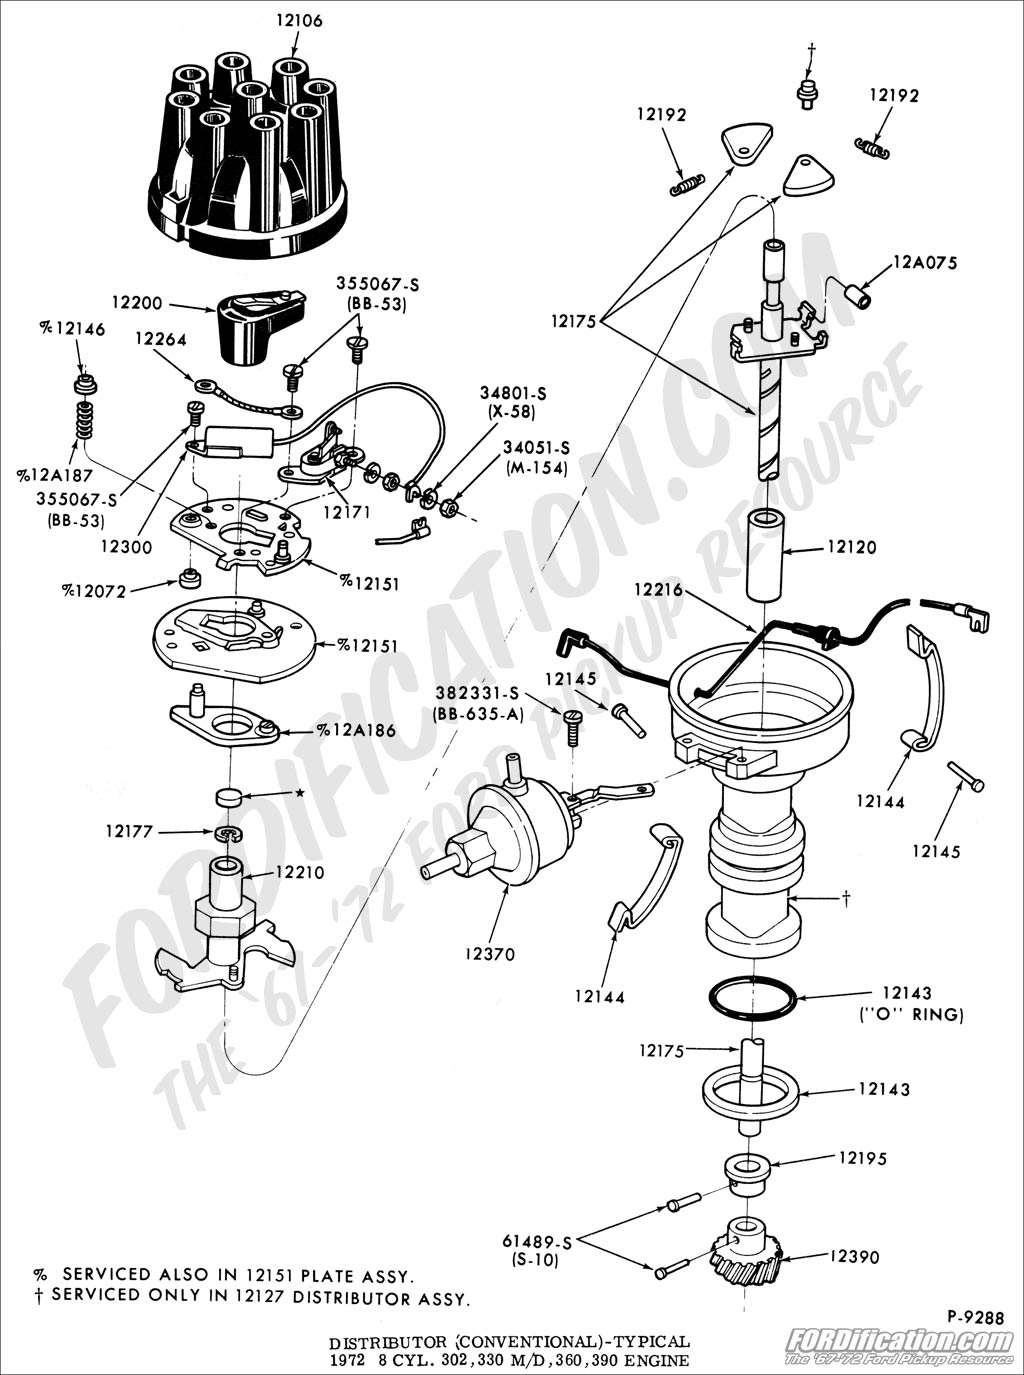 Baja Designs Xr650r Wiring Diagram likewise Ceiling Fan Wiring Diagram furthermore Electrical Wiring Rpm Gauge Diagram For Boat Johnson Faria Amazing Tachometer likewise Electrical Plan as well Mobile Home Service Entrance Wiring Diagram. on electrical wiring diagrams